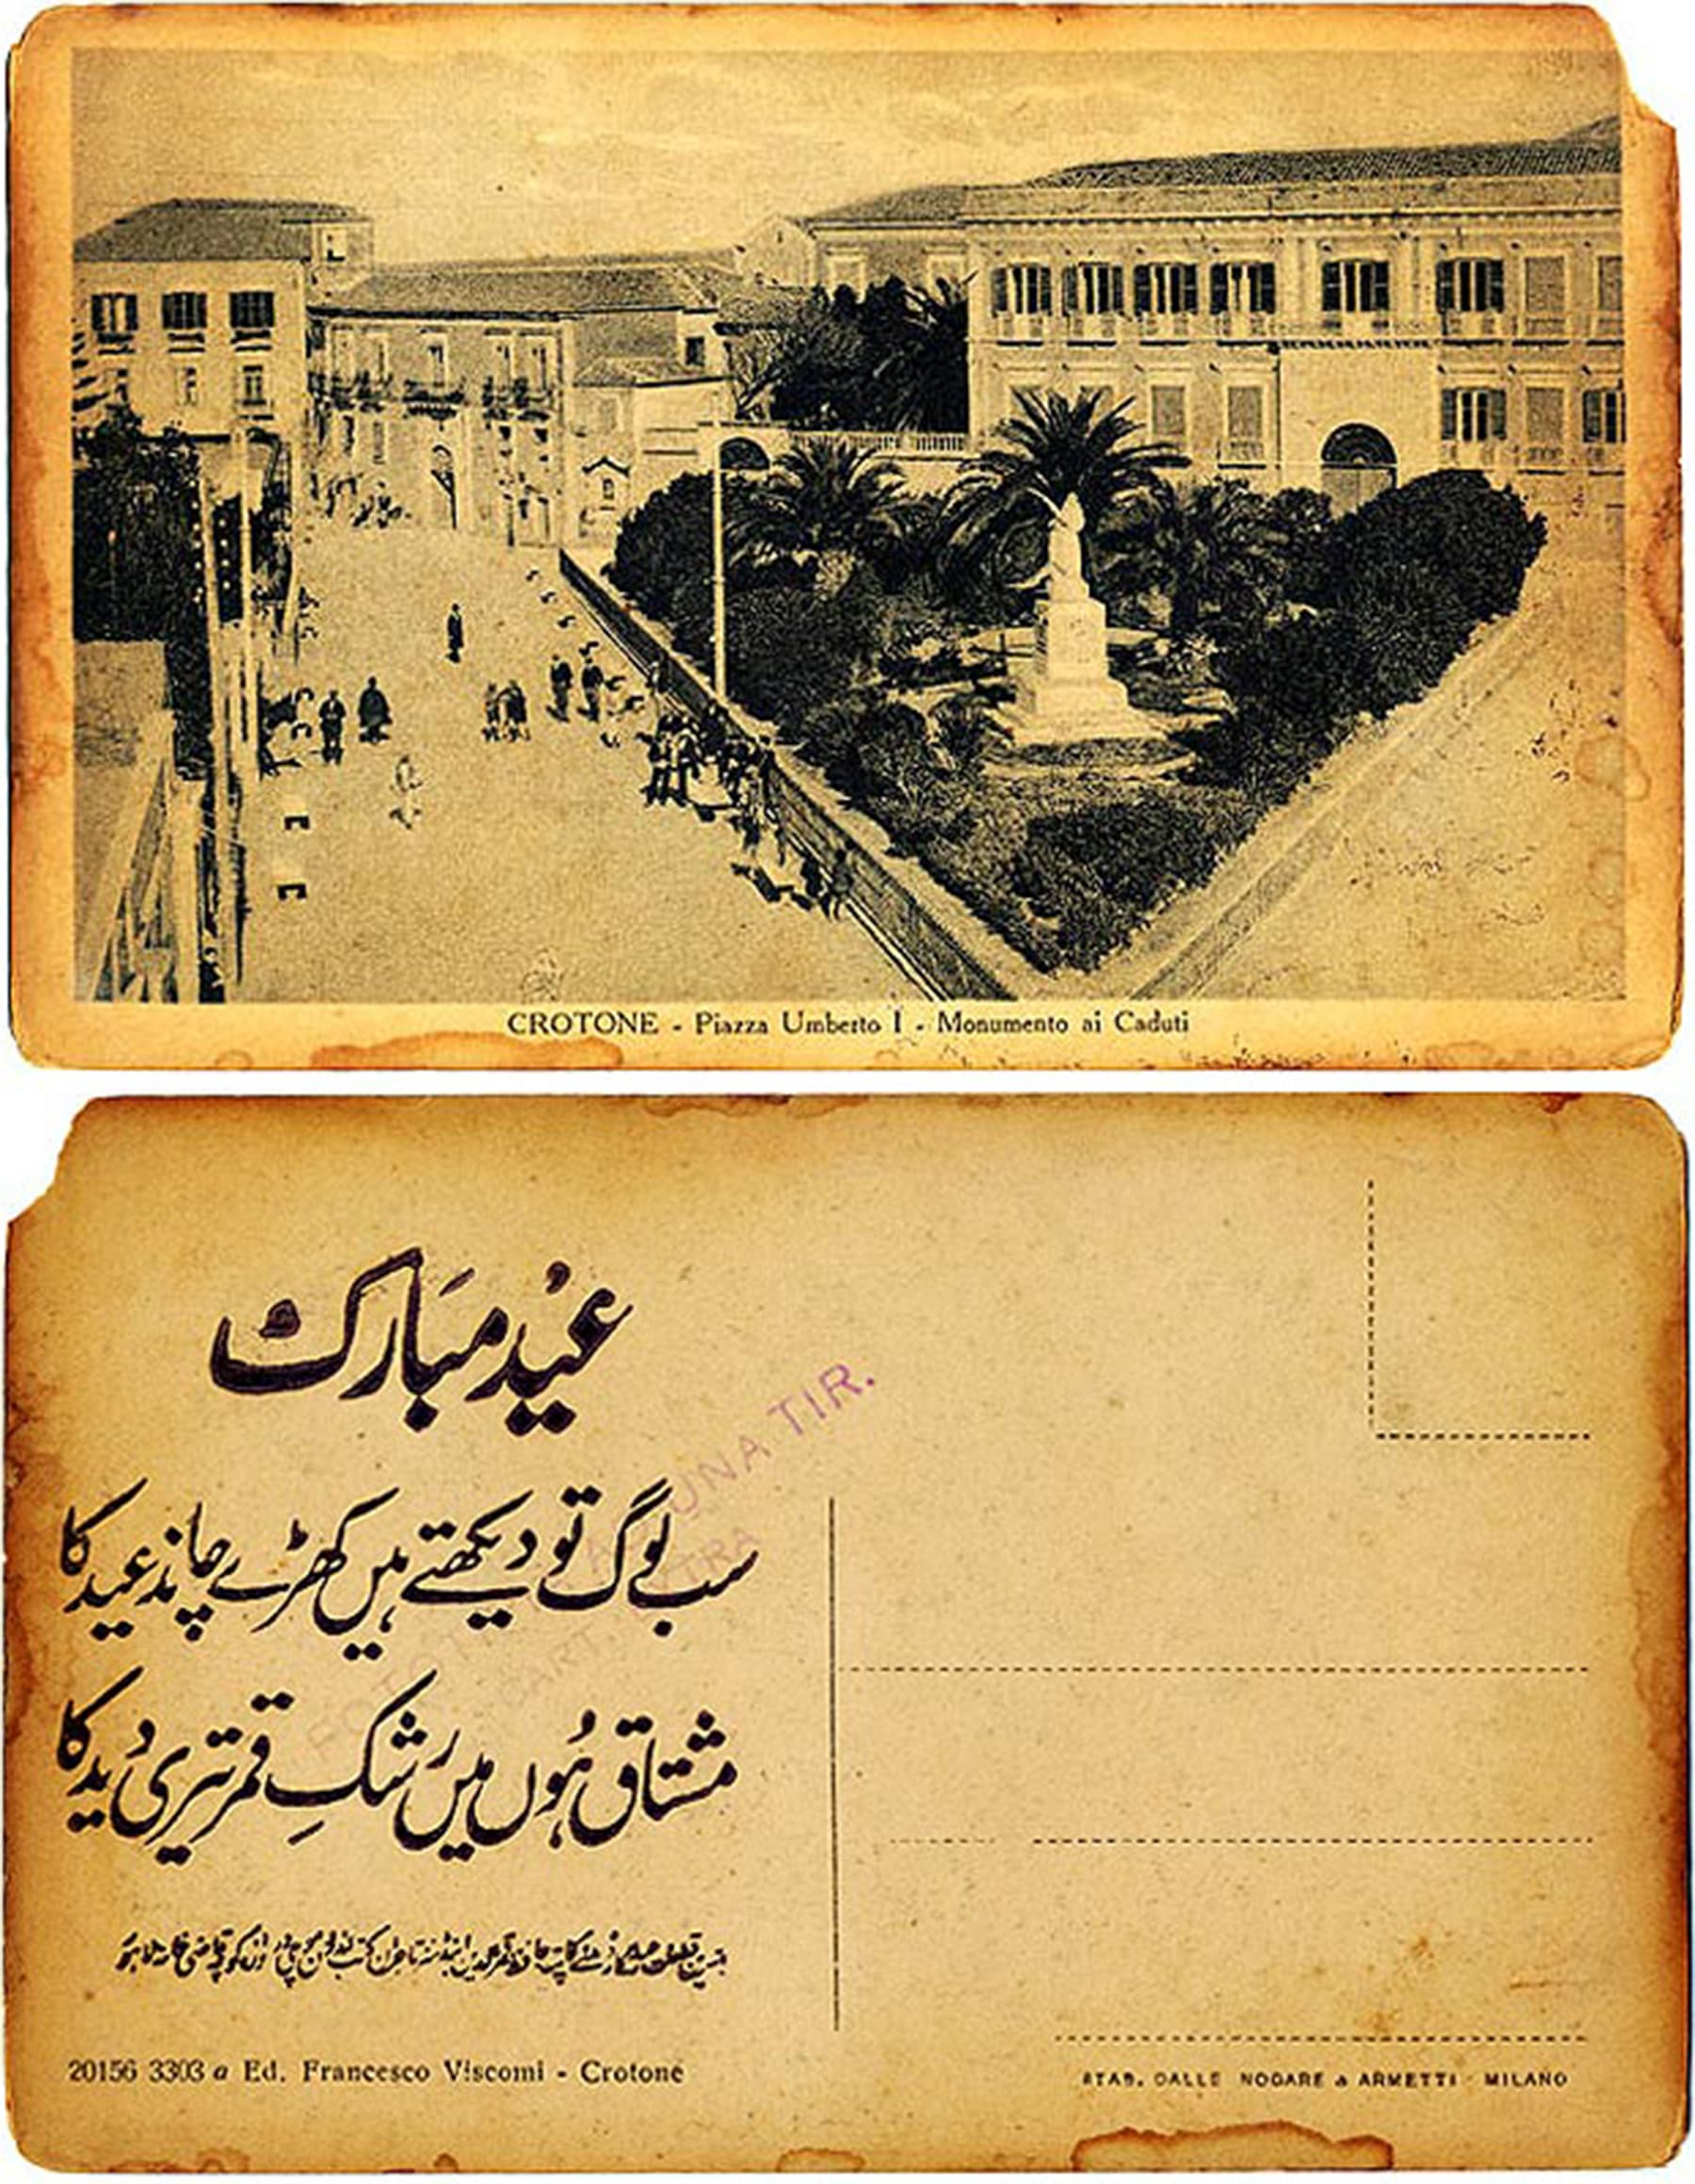 Postcard with the image of CROTONE – Piazza Umberto I War Memorial. Printed in Italy, distributed by Hafiz Qamruddin & Sons, Lahore with adaptation of Eid greetings and Urdu couplet on the address side. From the Priya Paul Collection, New Delhi.